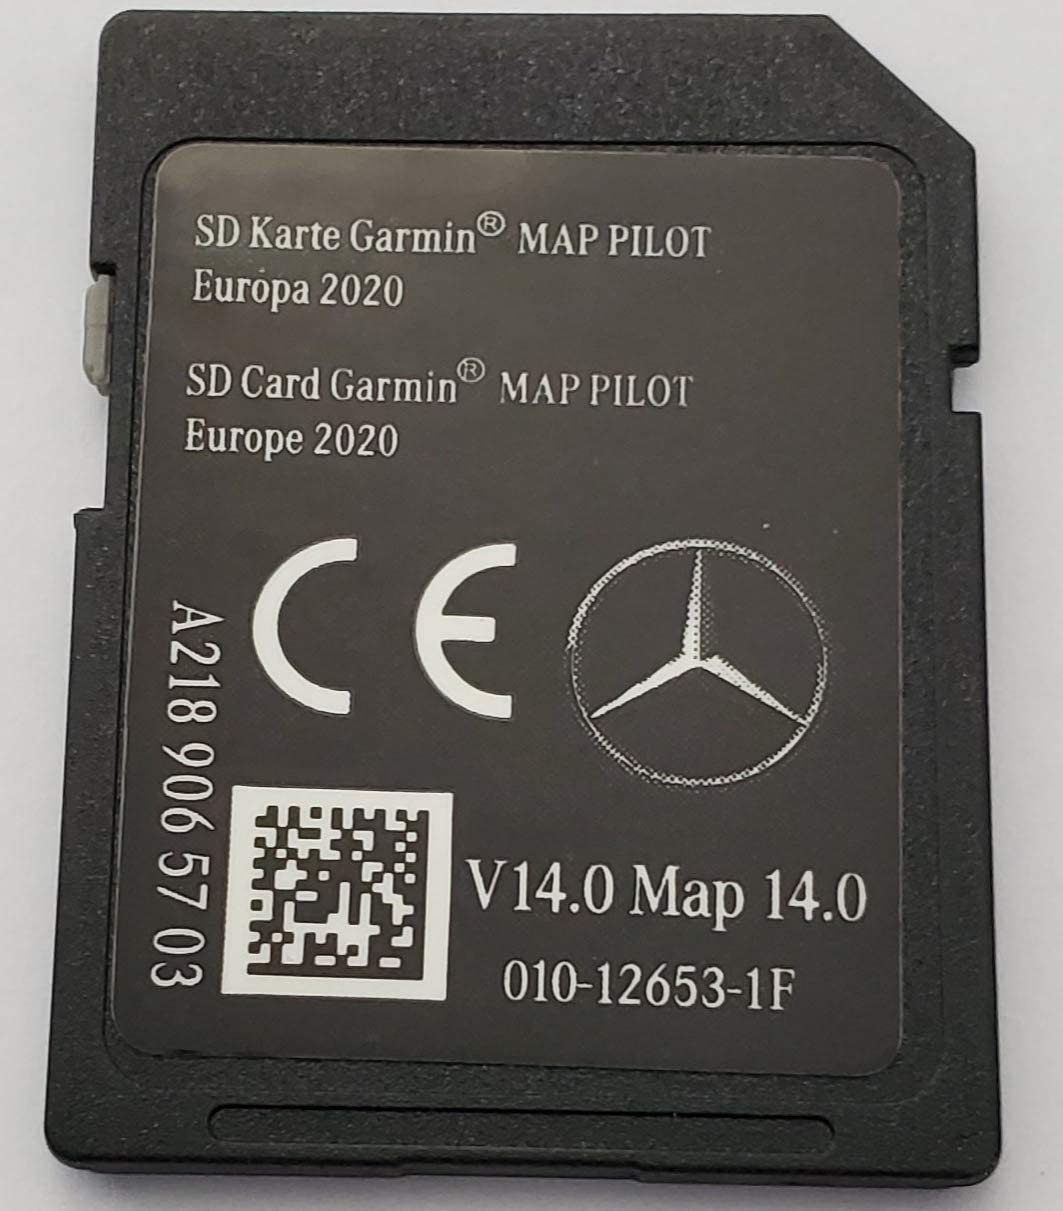 Tarjeta SD GPS Mercedes Garmin Map Pilot Europe 2020 - STAR1 - v14 - A2189065703